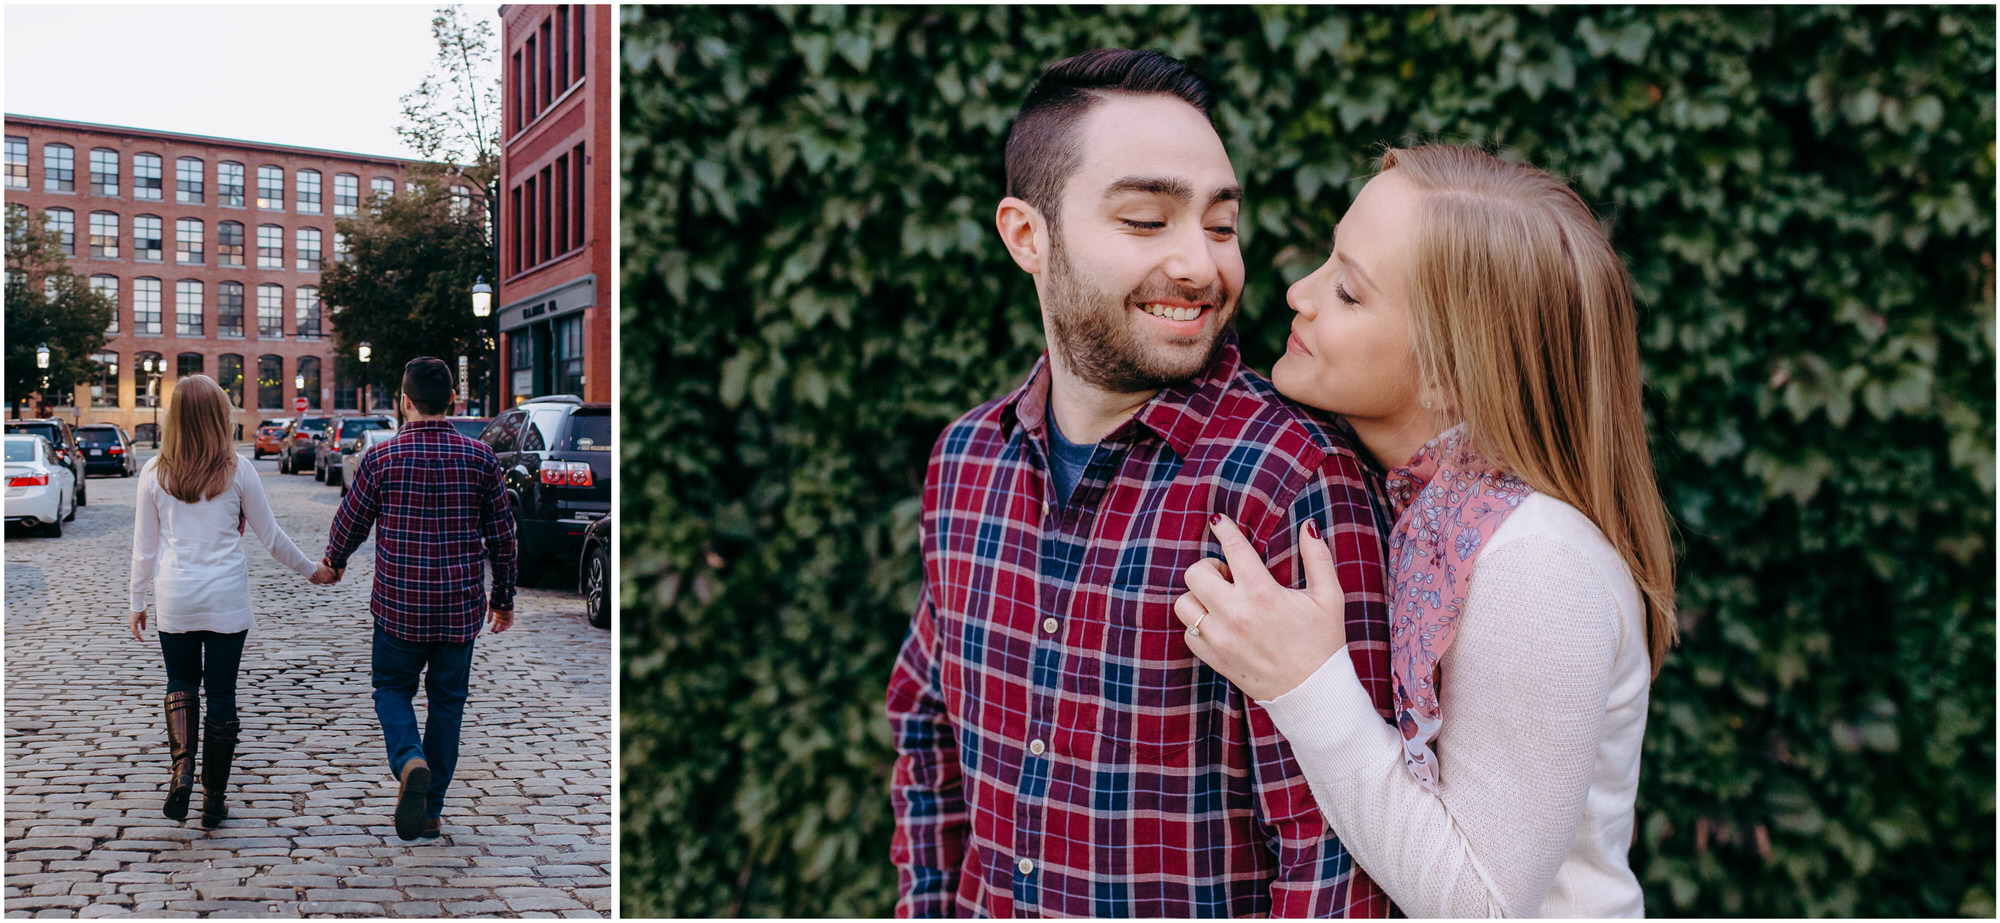 Engaged couple walks in downtown Lowell at sunset; they stand snuggling in front of a wall of ivy - by New Hampshire wedding photographer Ashleigh Laureen Photography in Lowell, Massachusetts